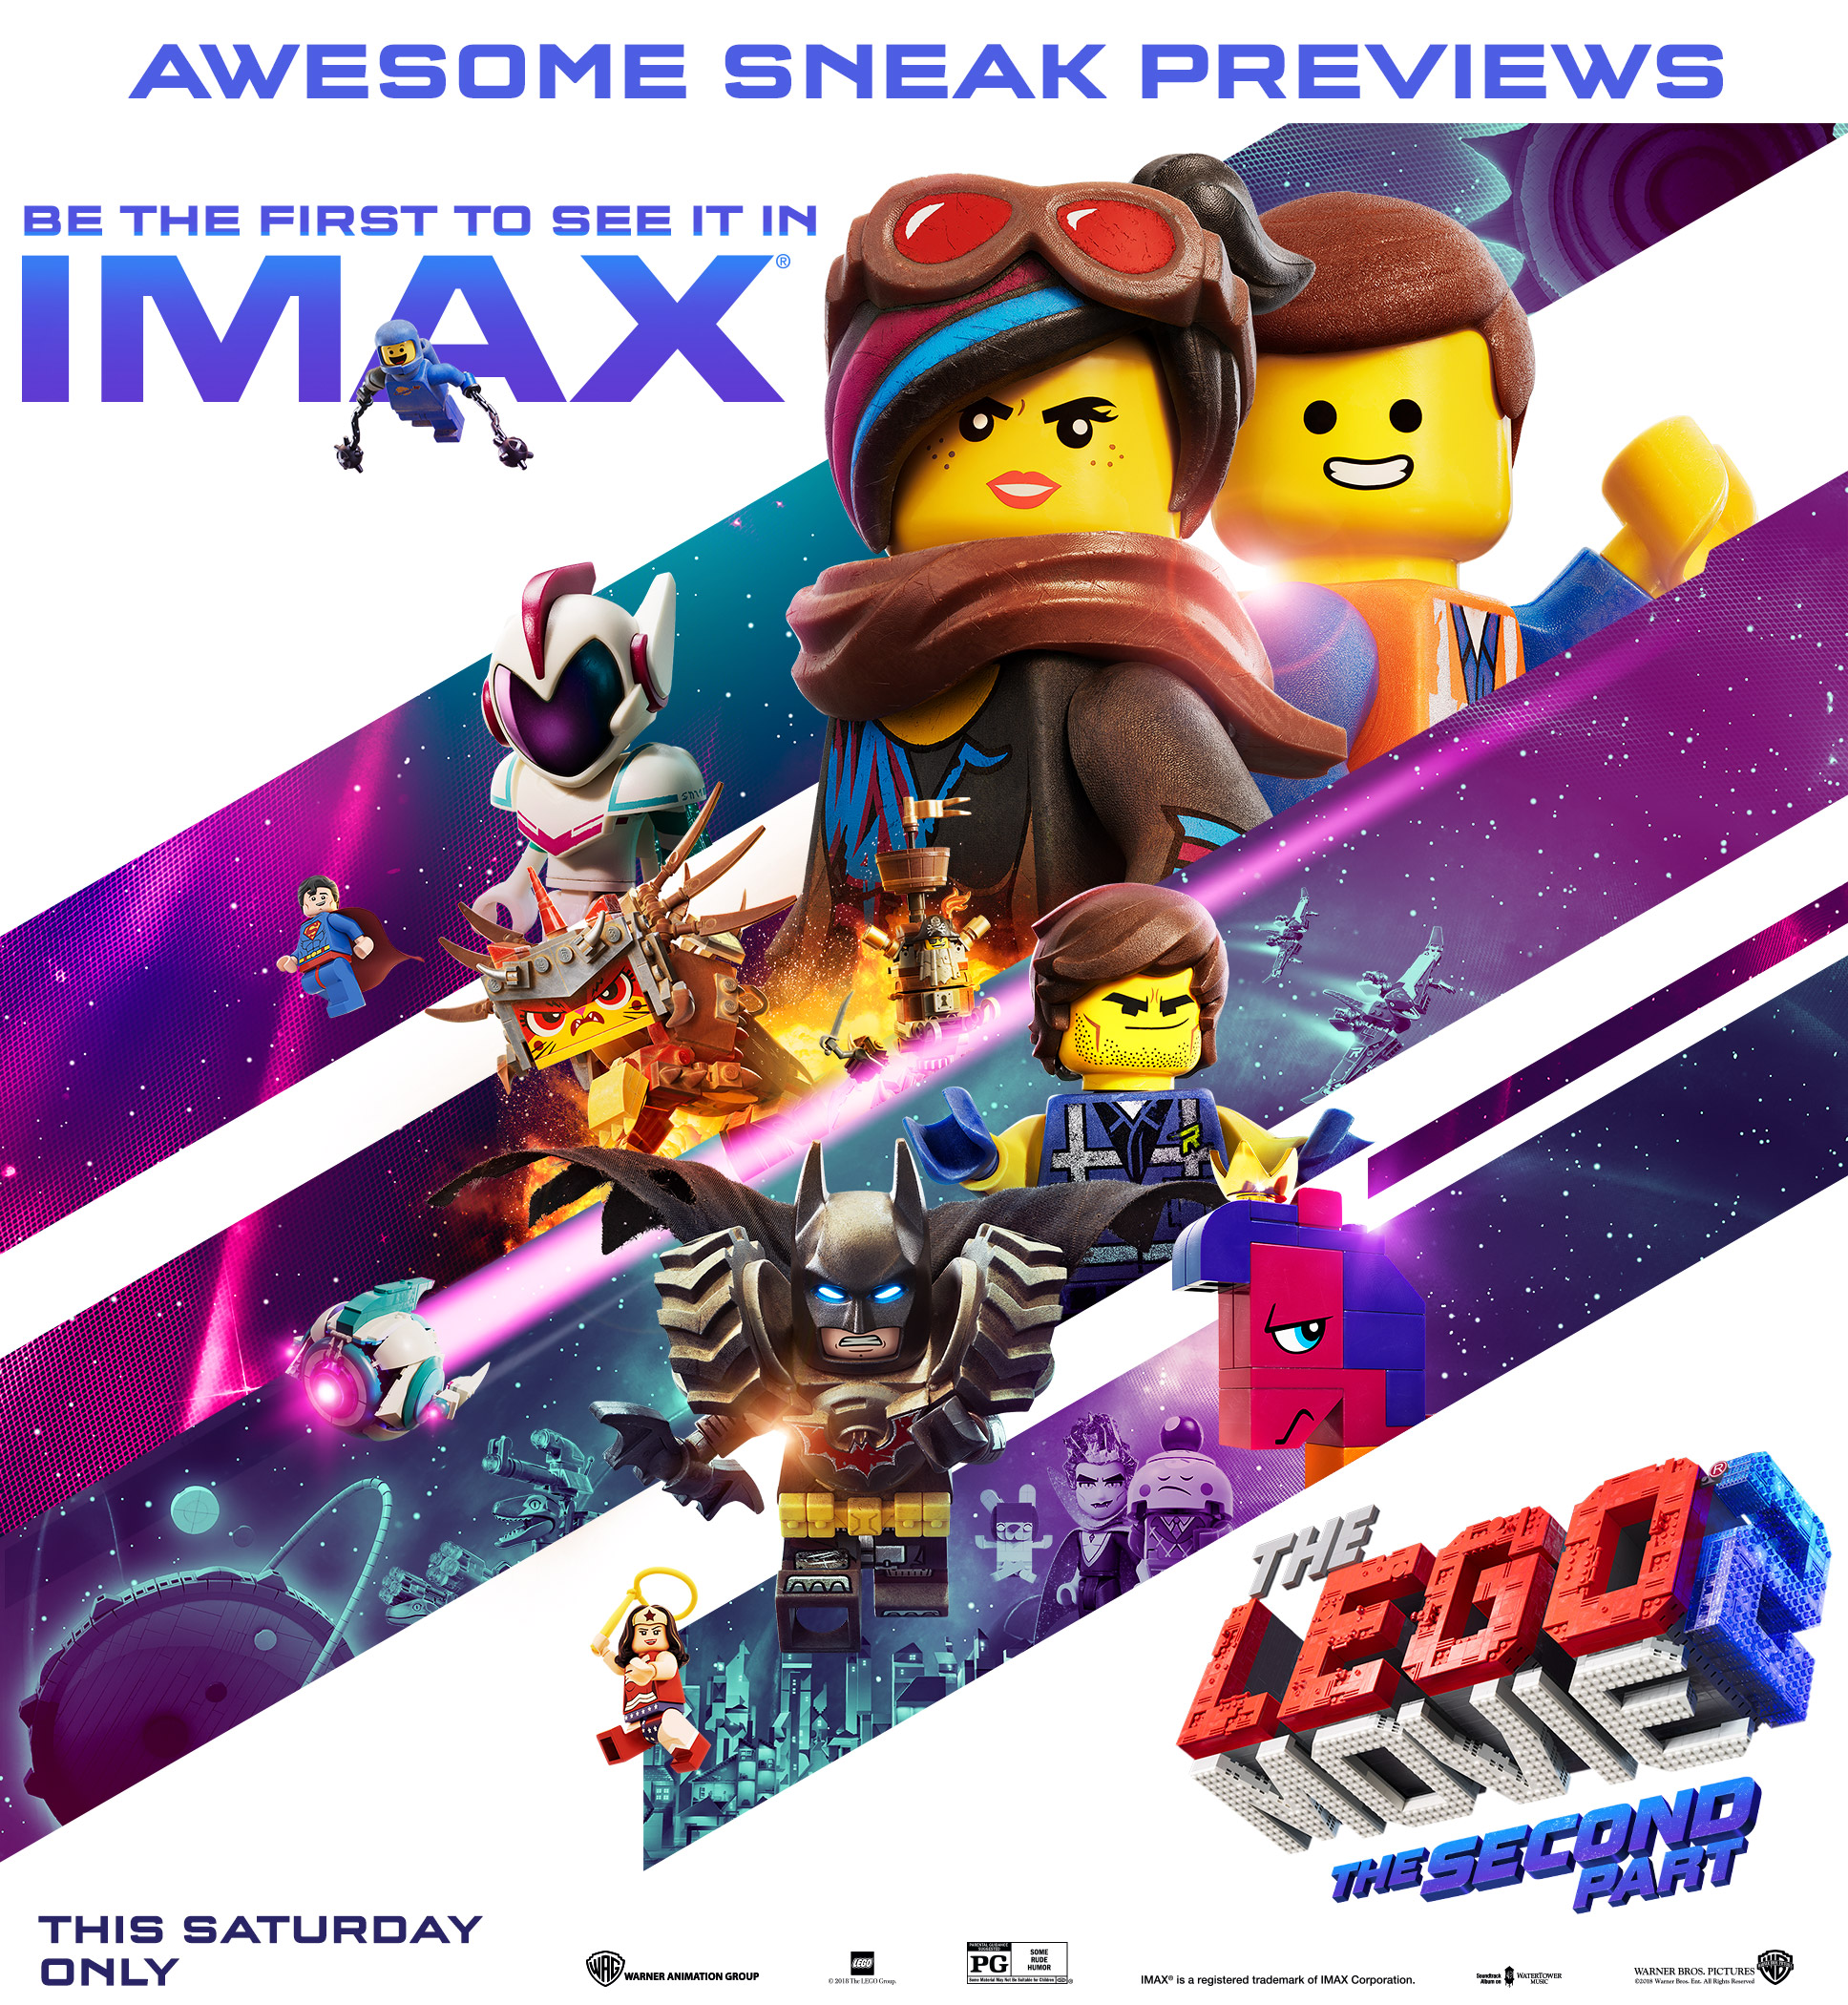 The LEGO Movie 2: The Second Part Awesome Sneak Previews